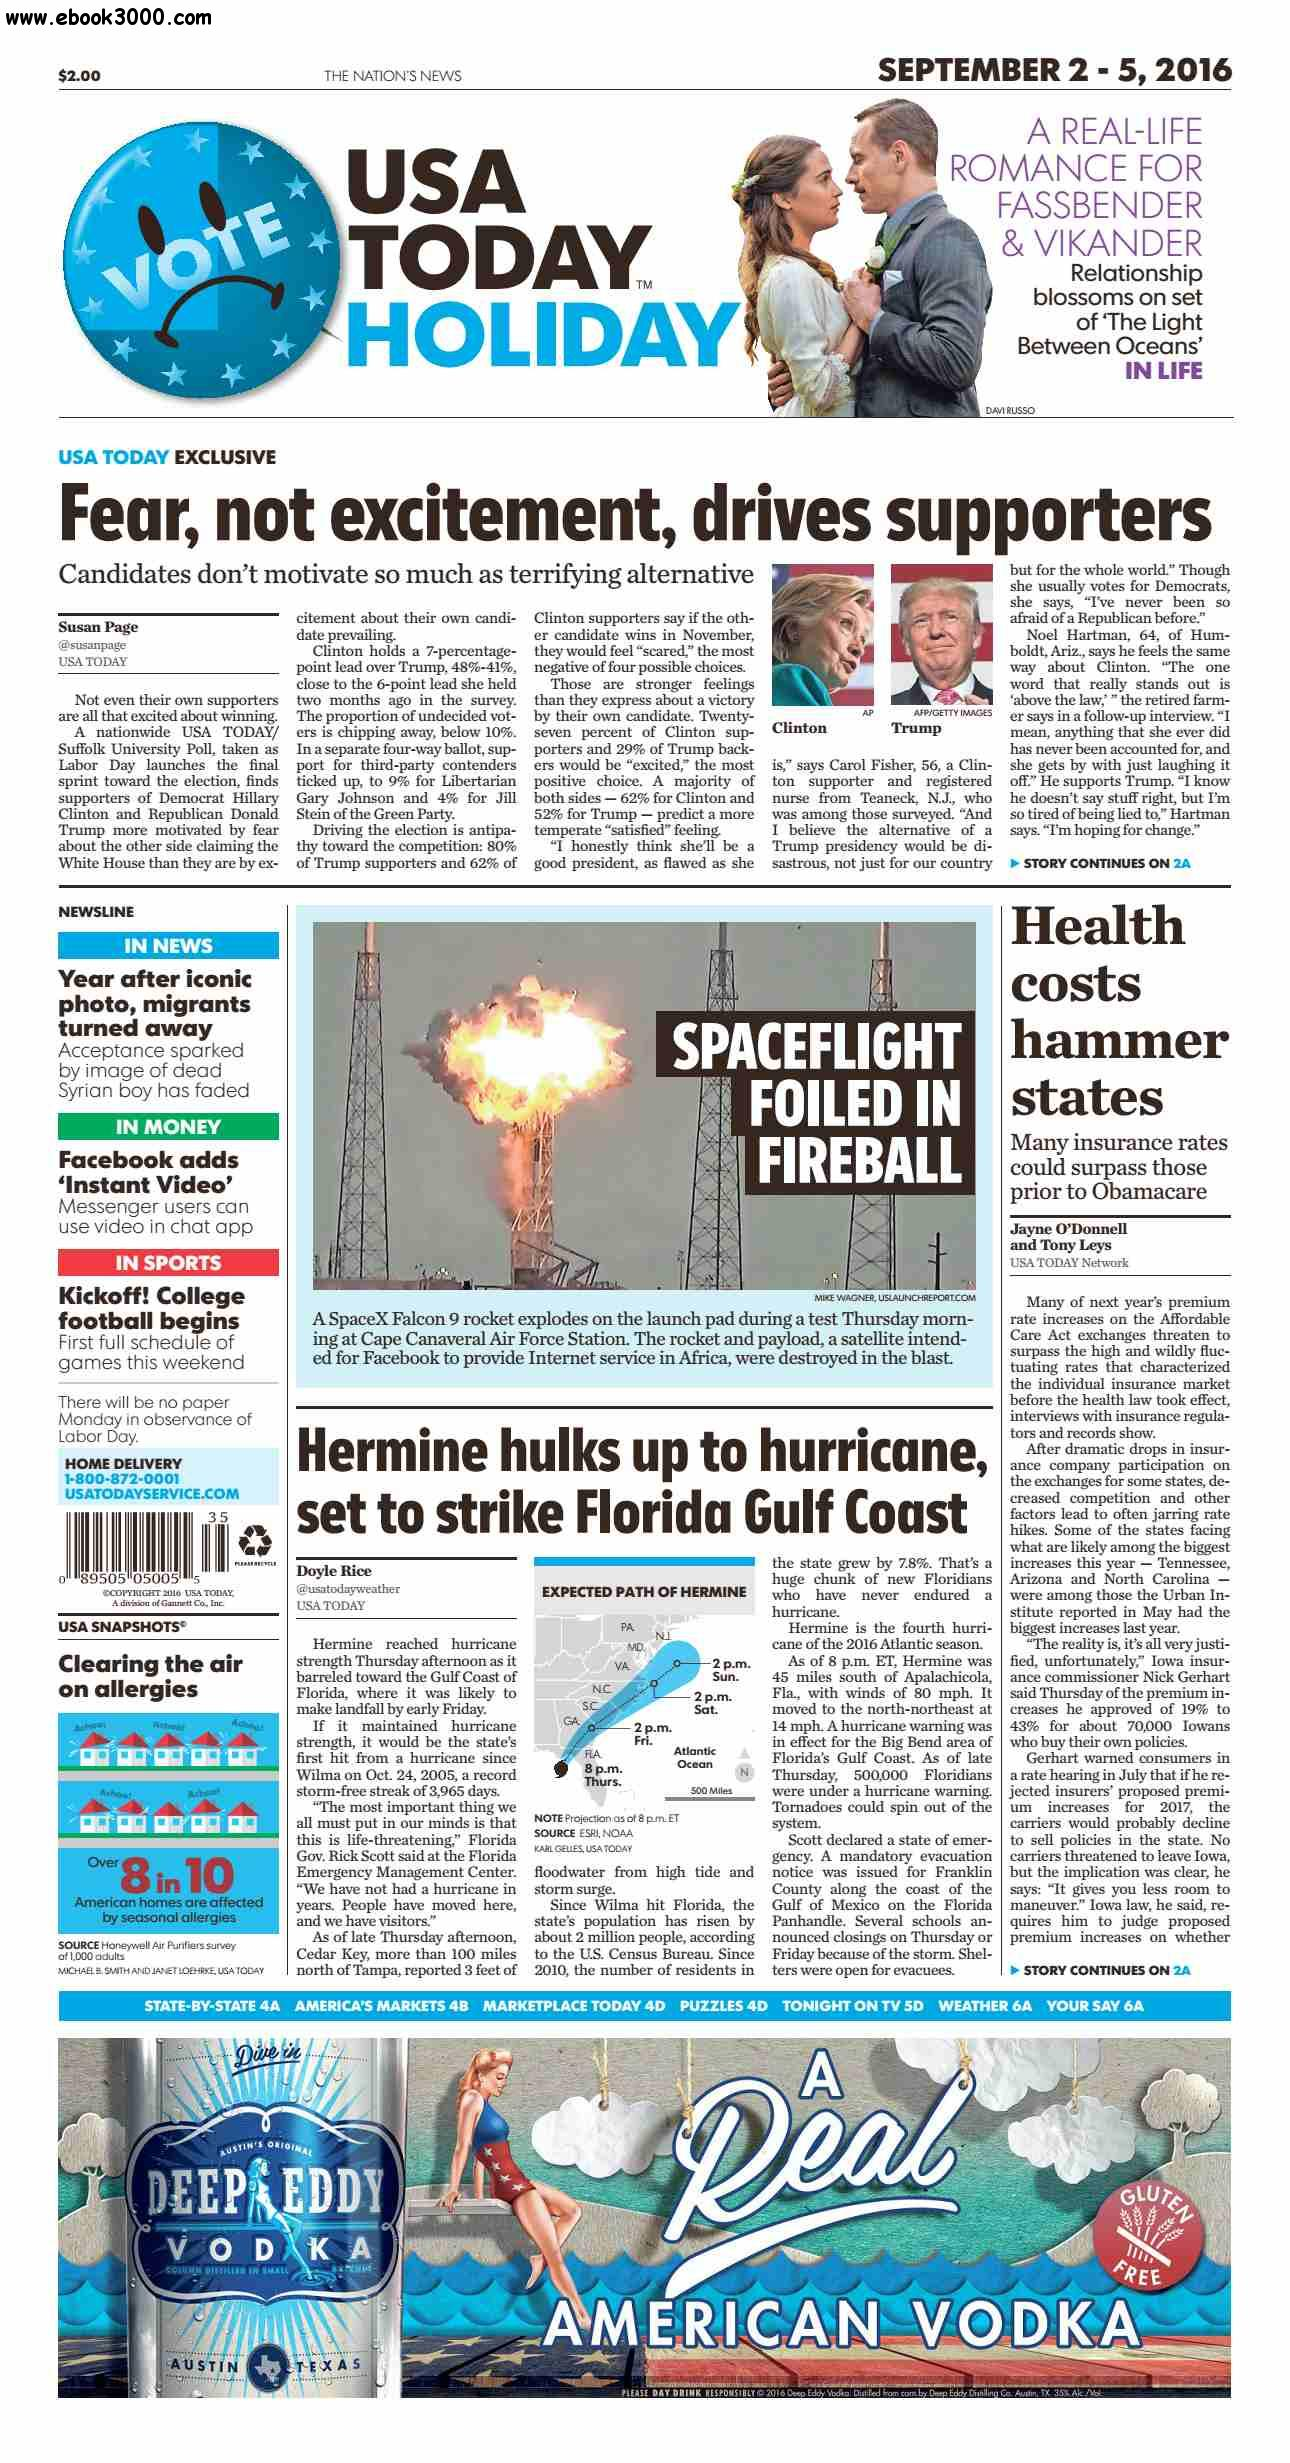 USA Today September 02 2016 - Free eBooks Download: ebook3000.com/USA-Today--September-02-2016_386855.html